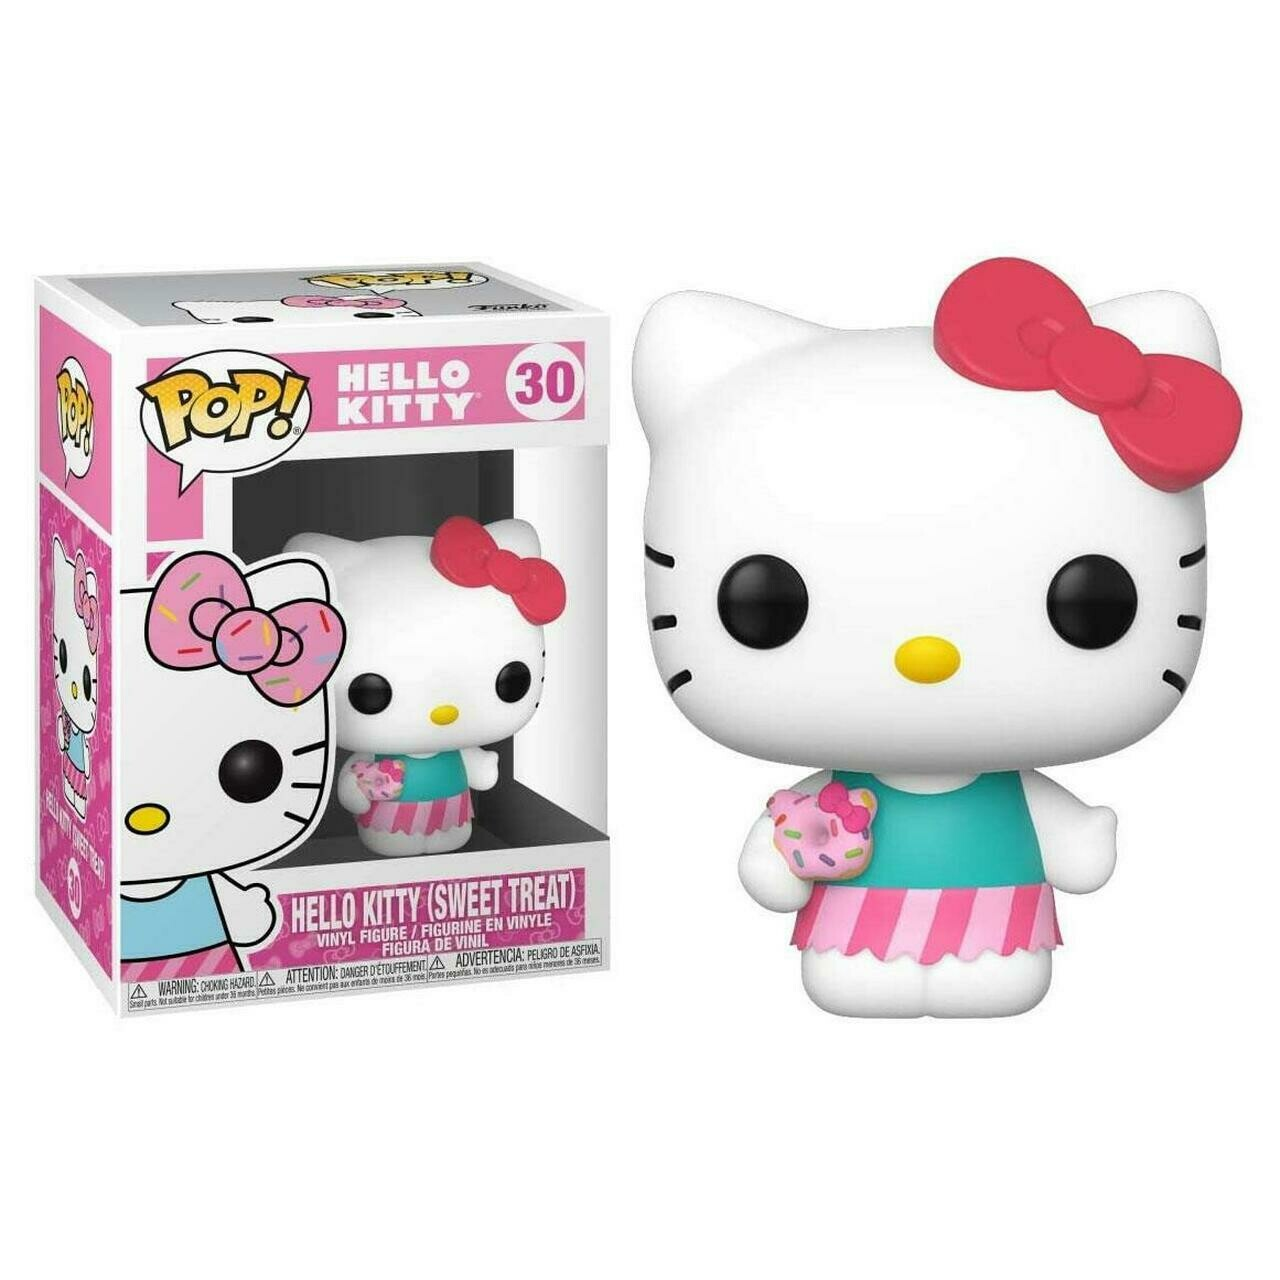 Funko POP! Hello Kitty 'Sweet Treat'. Pop! No: 30